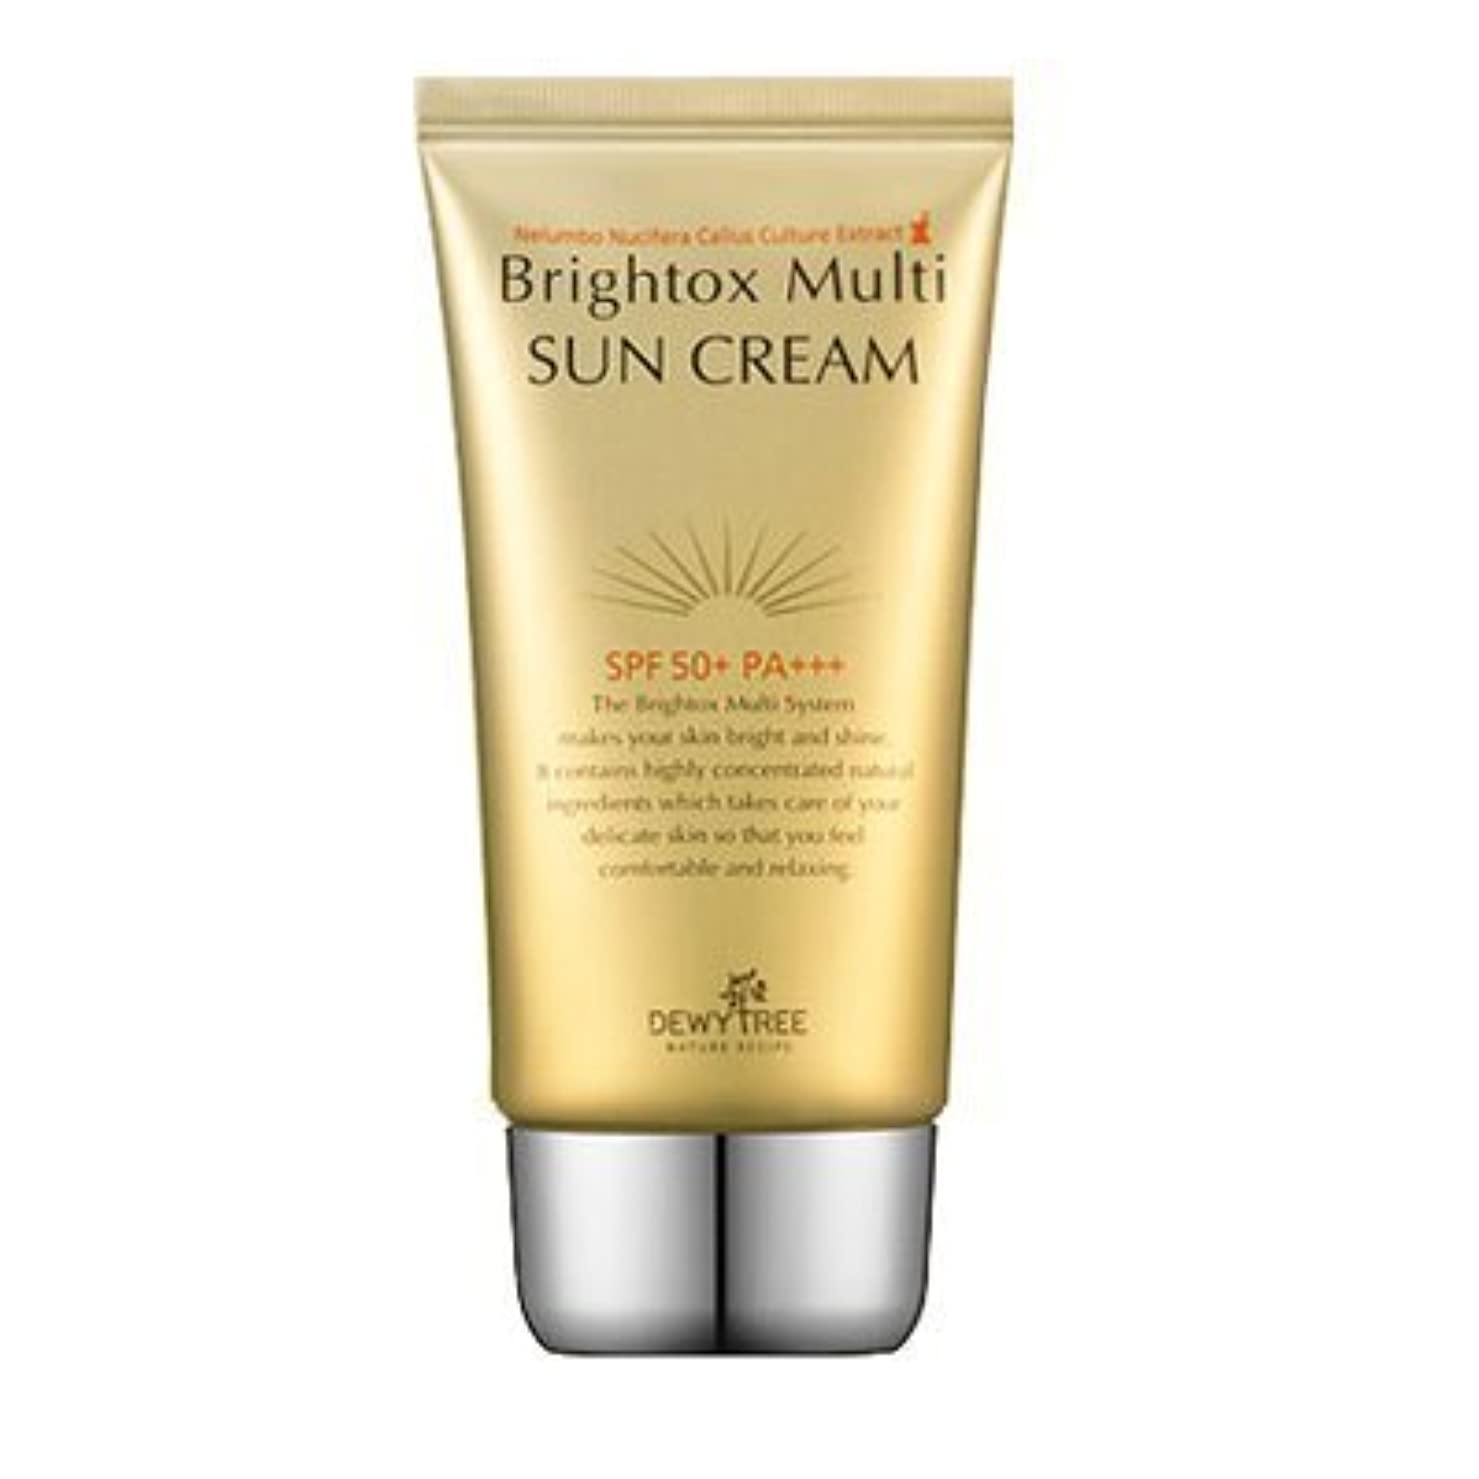 敬な気まぐれな苛性Dewytree Brightox Multi SUN CREAM SPF50+, PA+++50ml